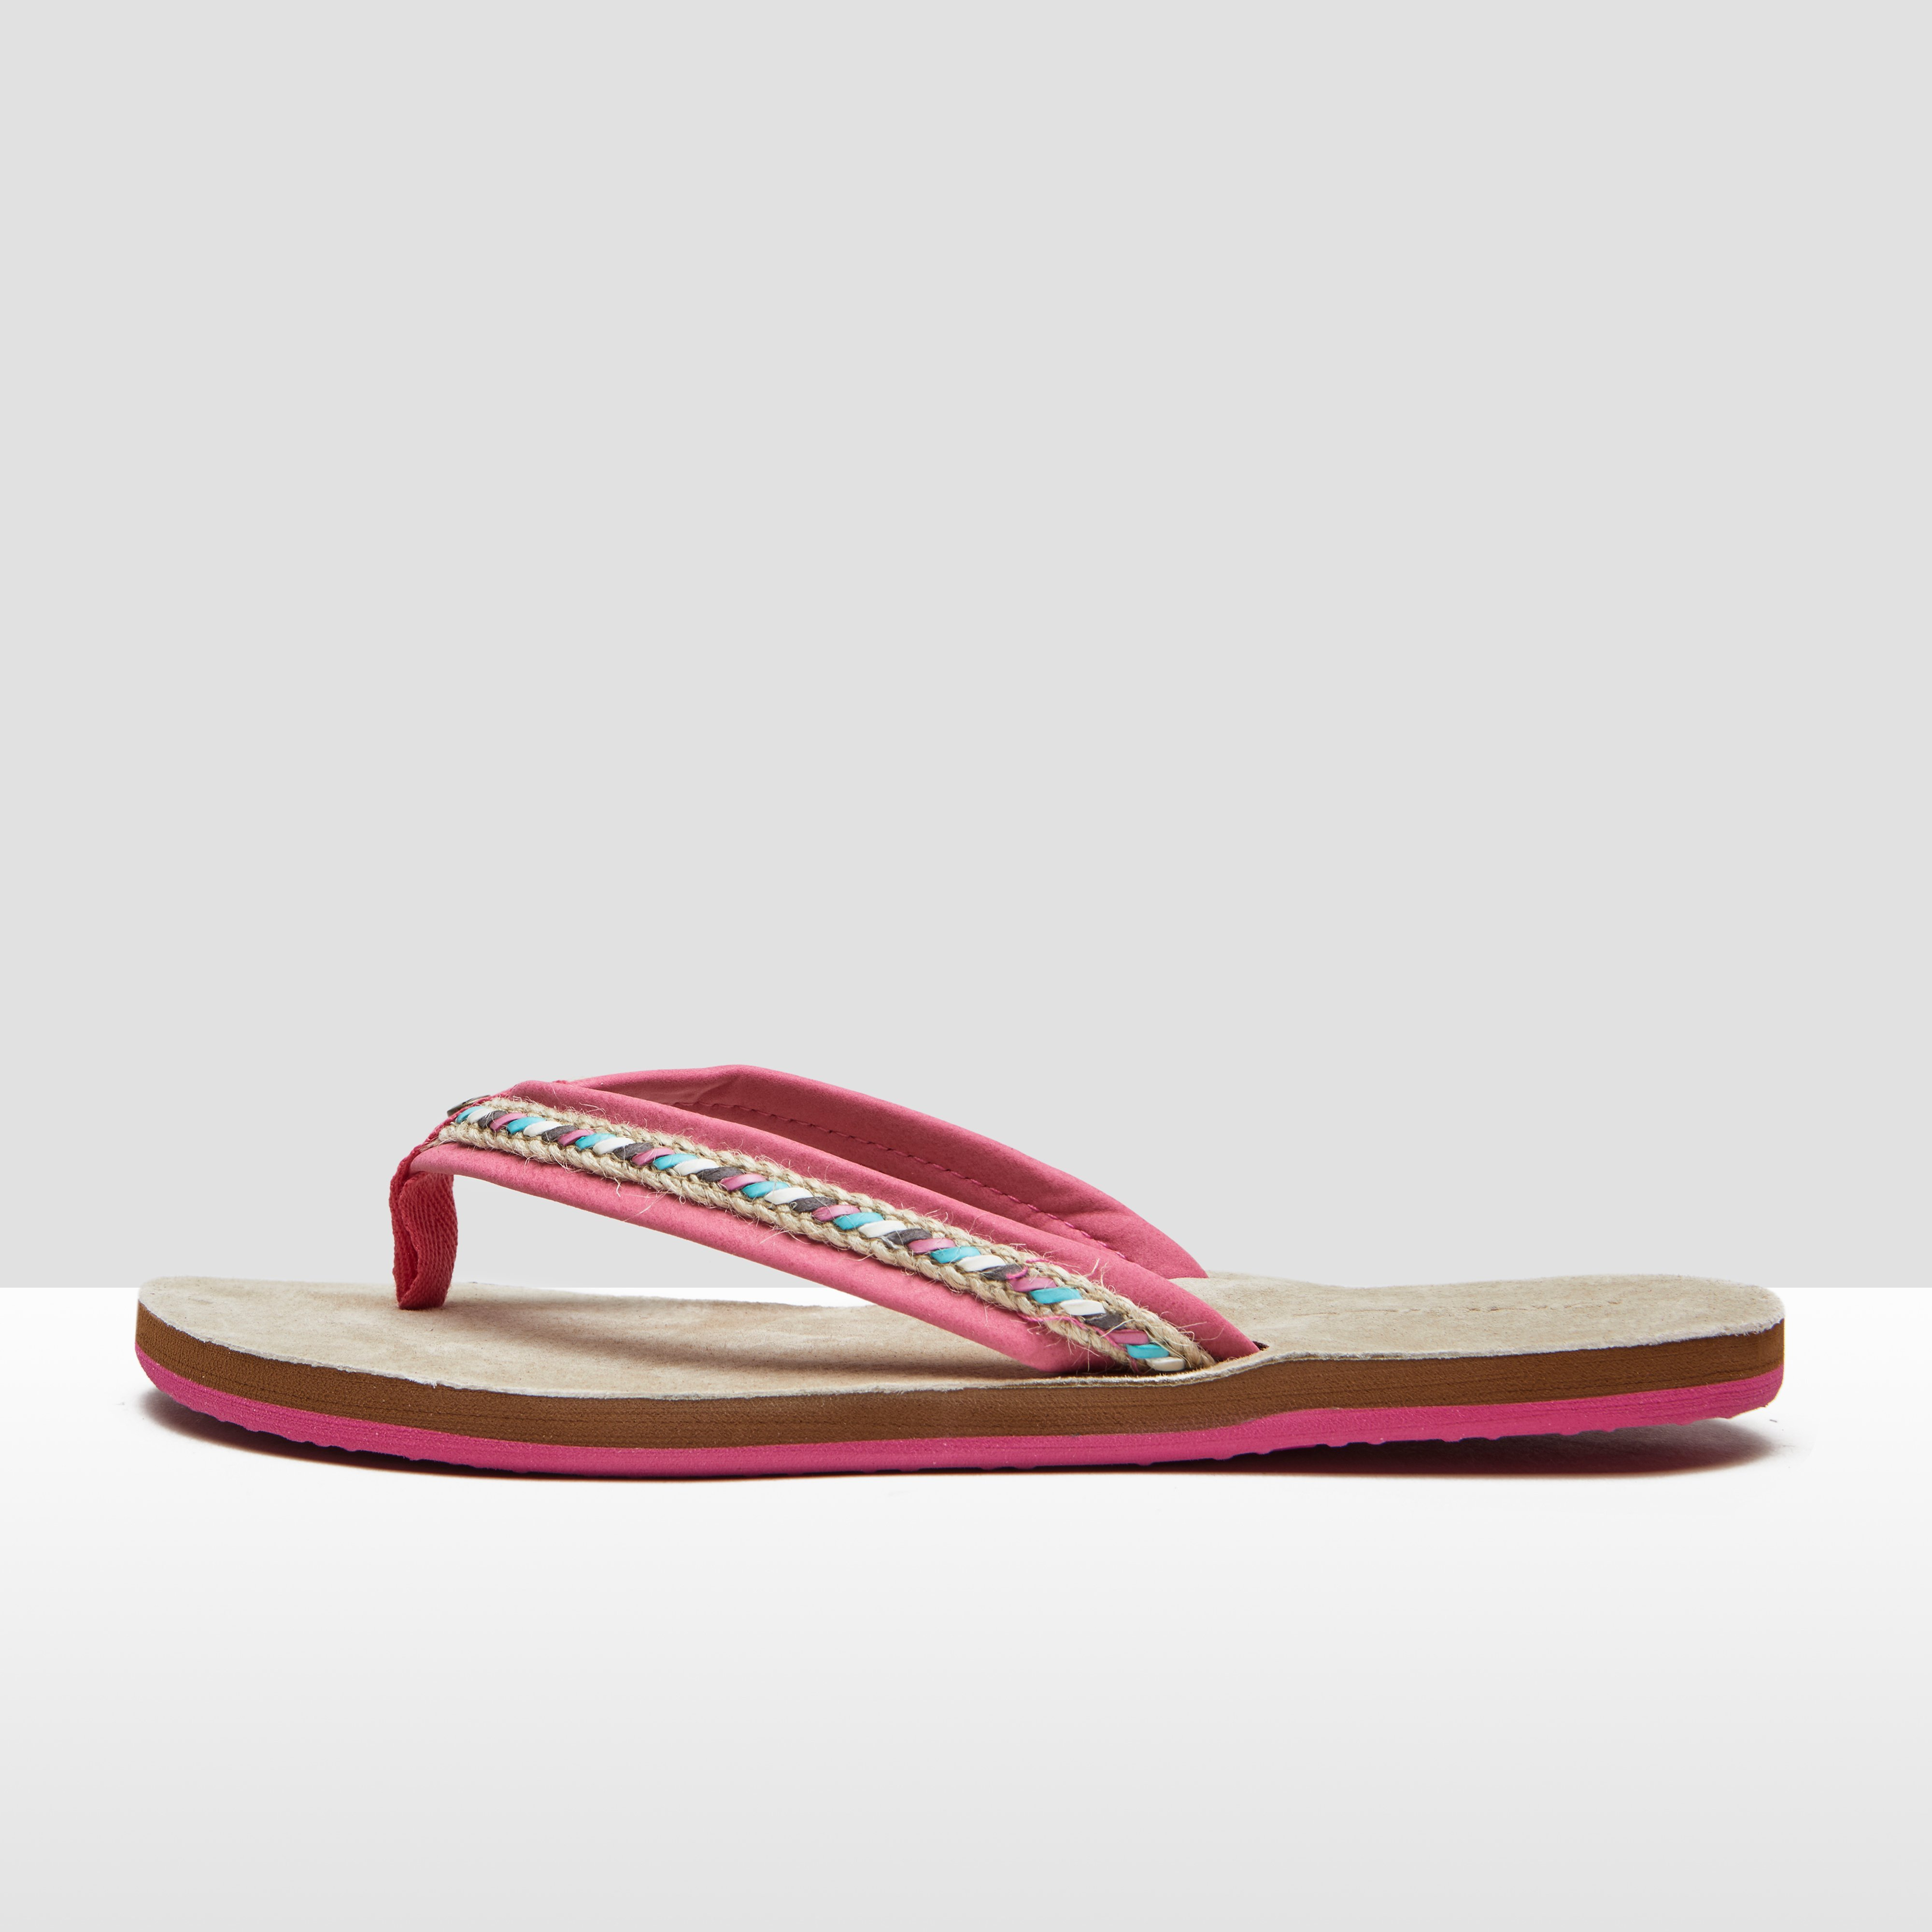 O'NEILL NATURAL STRAP SLIPPERS ROZE DAMES